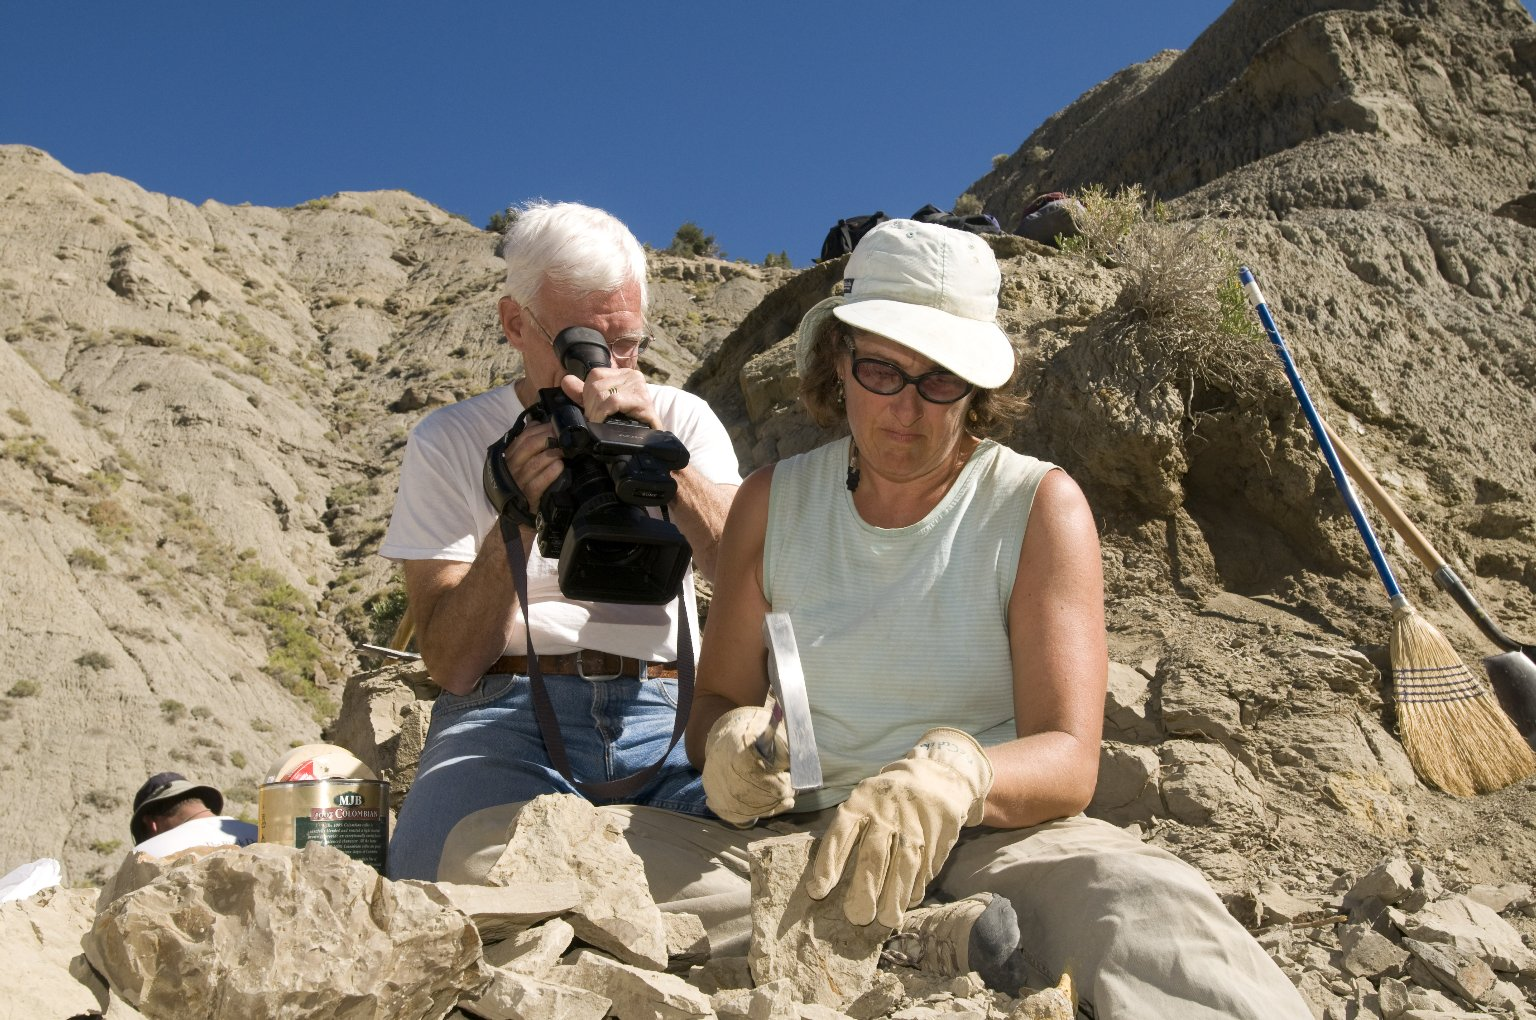 Dave Baysinger (left) films a DMNS Volunteer using a rock hammer to break open rocks to look for leaf specimens on the Kaiparowits Plateau.